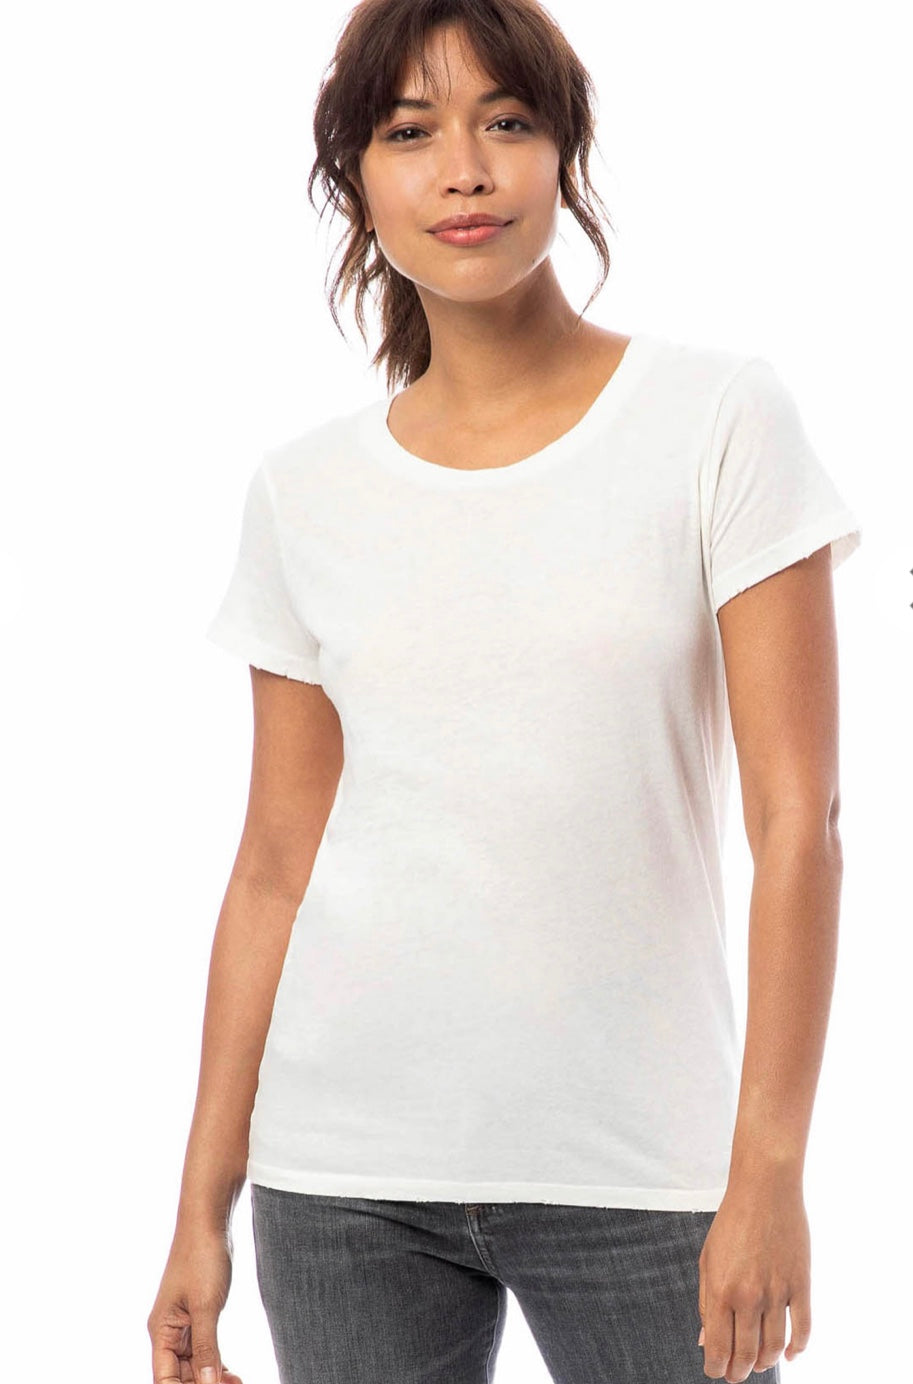 MTG Basics - Distressed Women's White T-Shirt